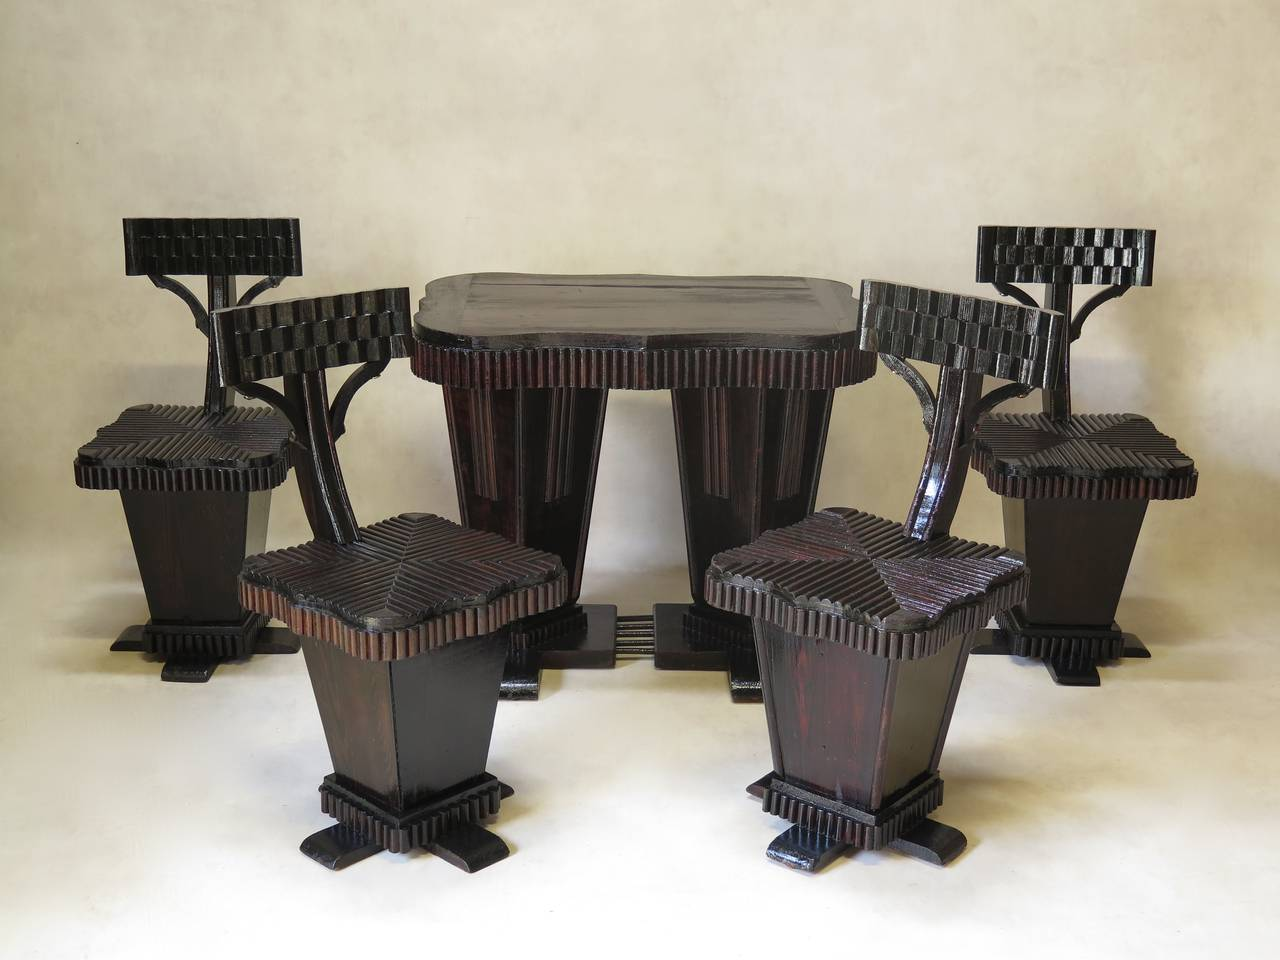 Unusual Art Deco Table and Chair Set, France, 1930s 2